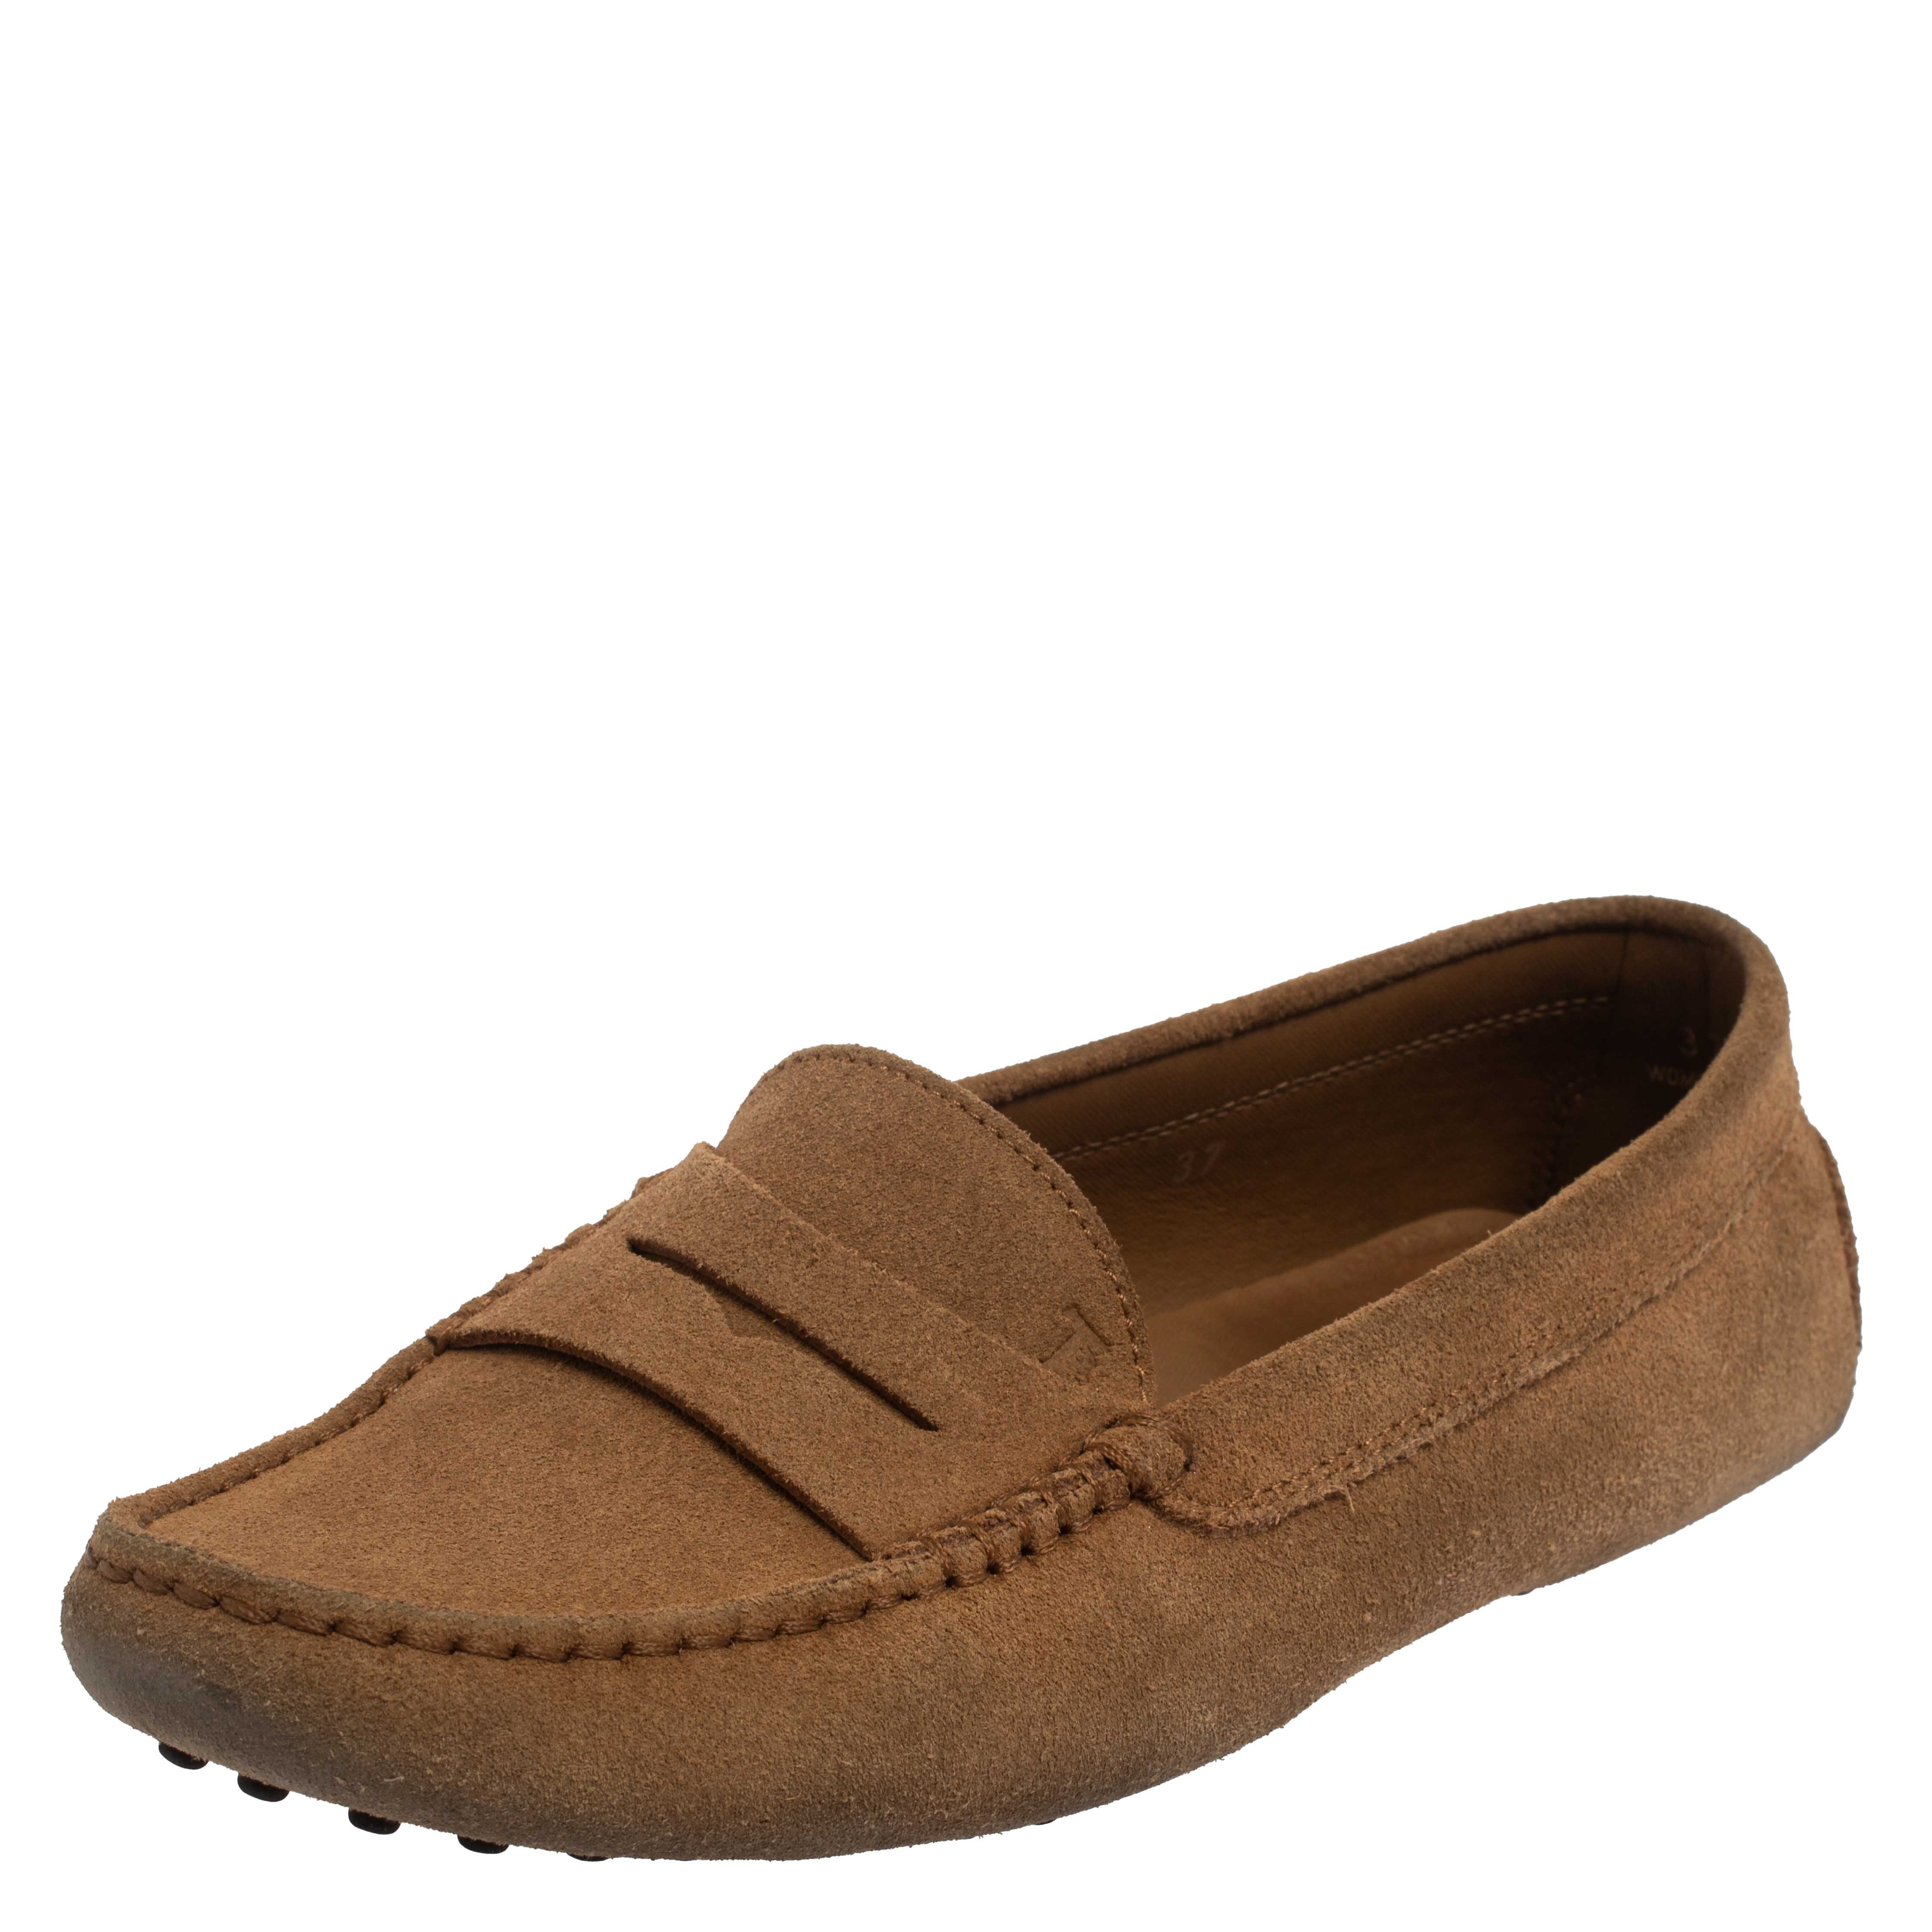 Tod's Brown Suede Penny Slip On Loafers Size 37